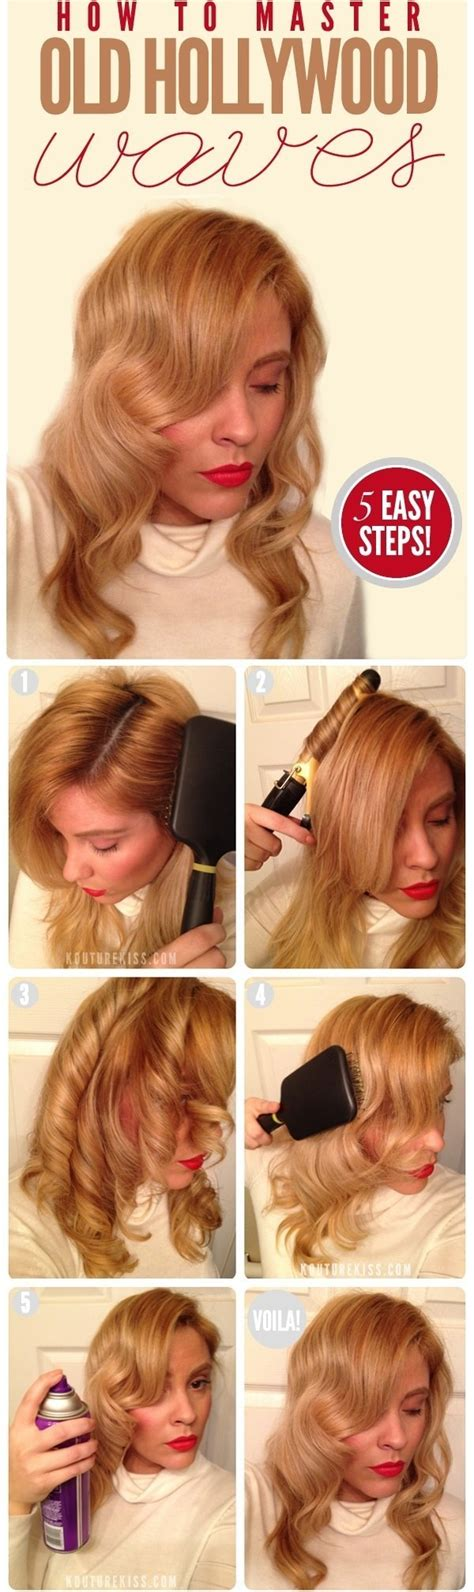 diy vintage big hairstyles 30 diy vintage hairstyle tutorials for short medium long